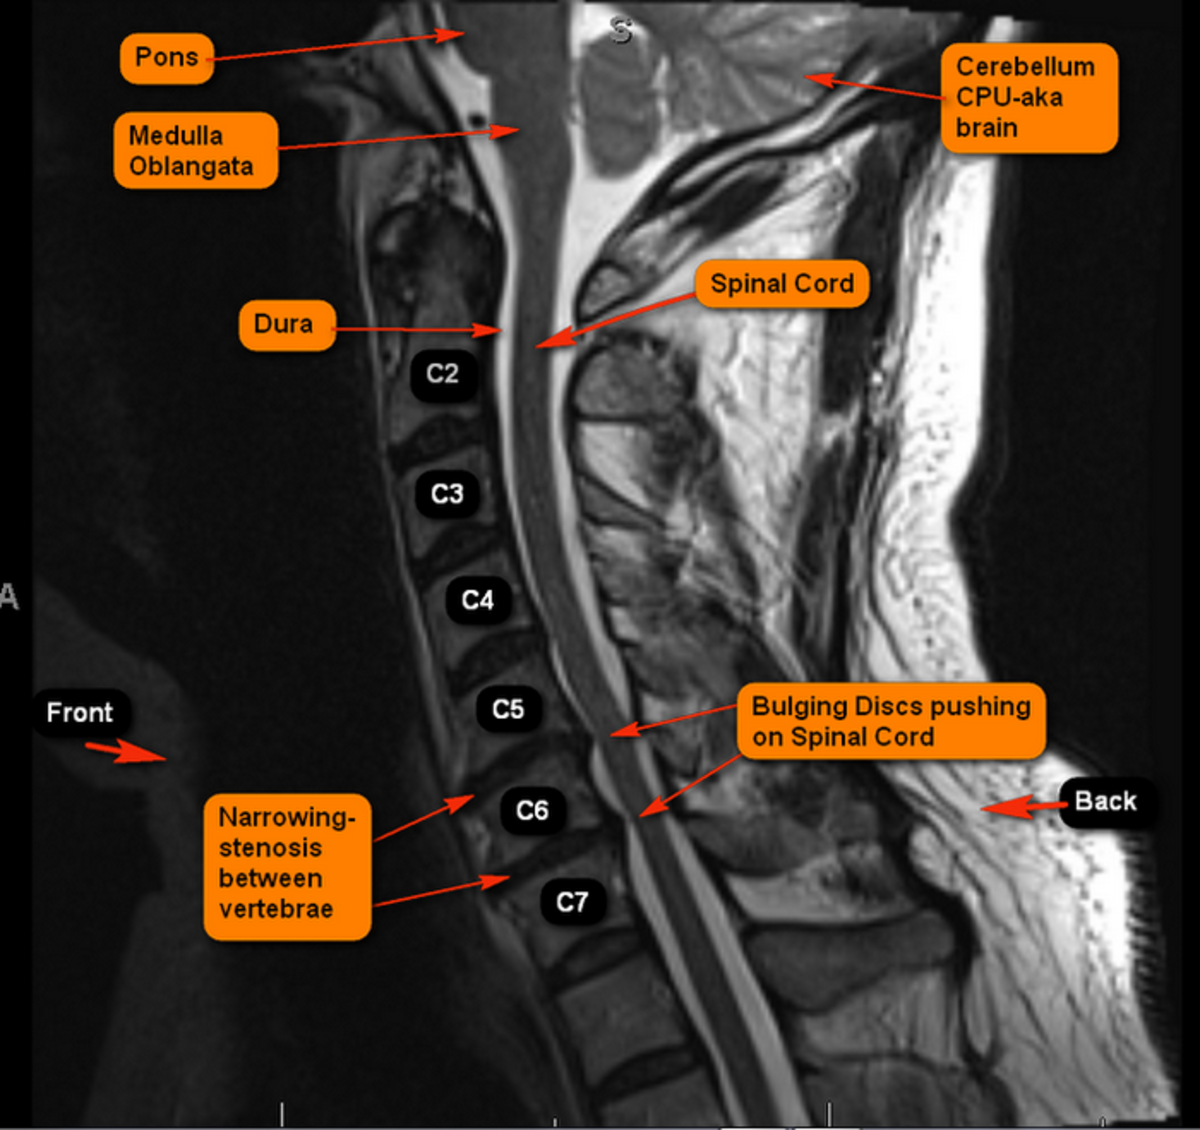 Anterior Cervical Disk Fusion Surgery (ACDF) - My Experience